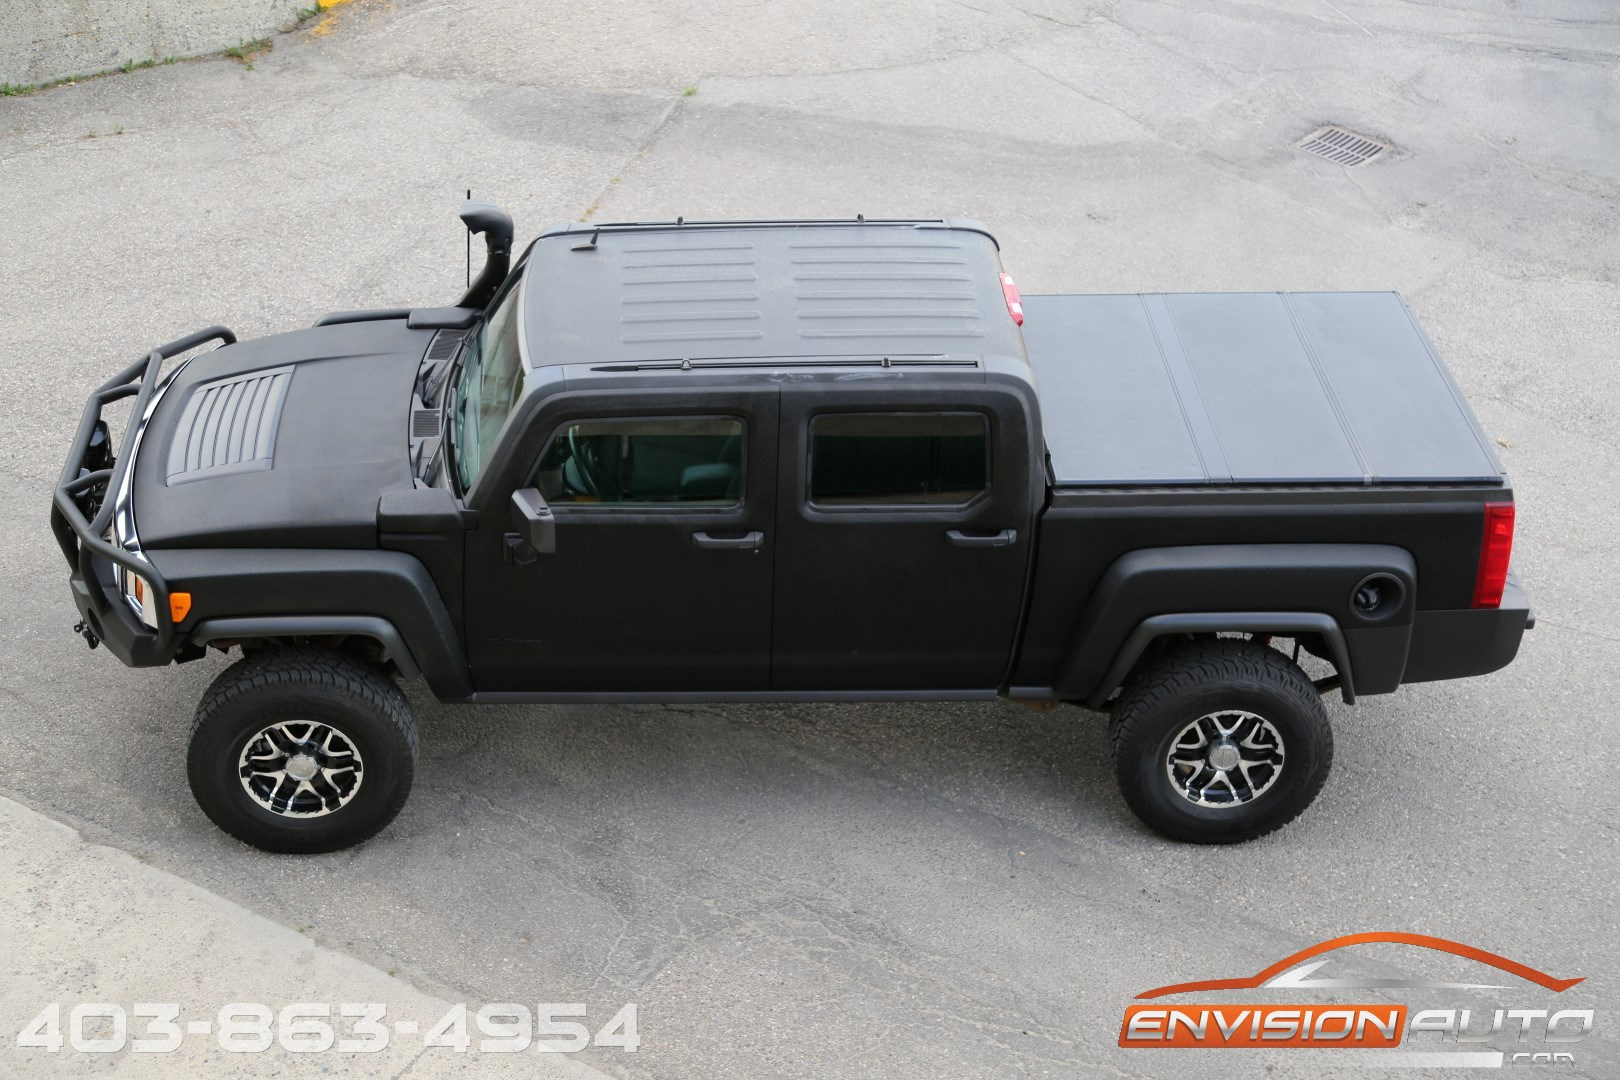 Jeep Lift Kit >> 2009 Hummer H3T Truck – Offroad Package – Lifted – 5 Speed Manual | Envision Auto - Calgary ...